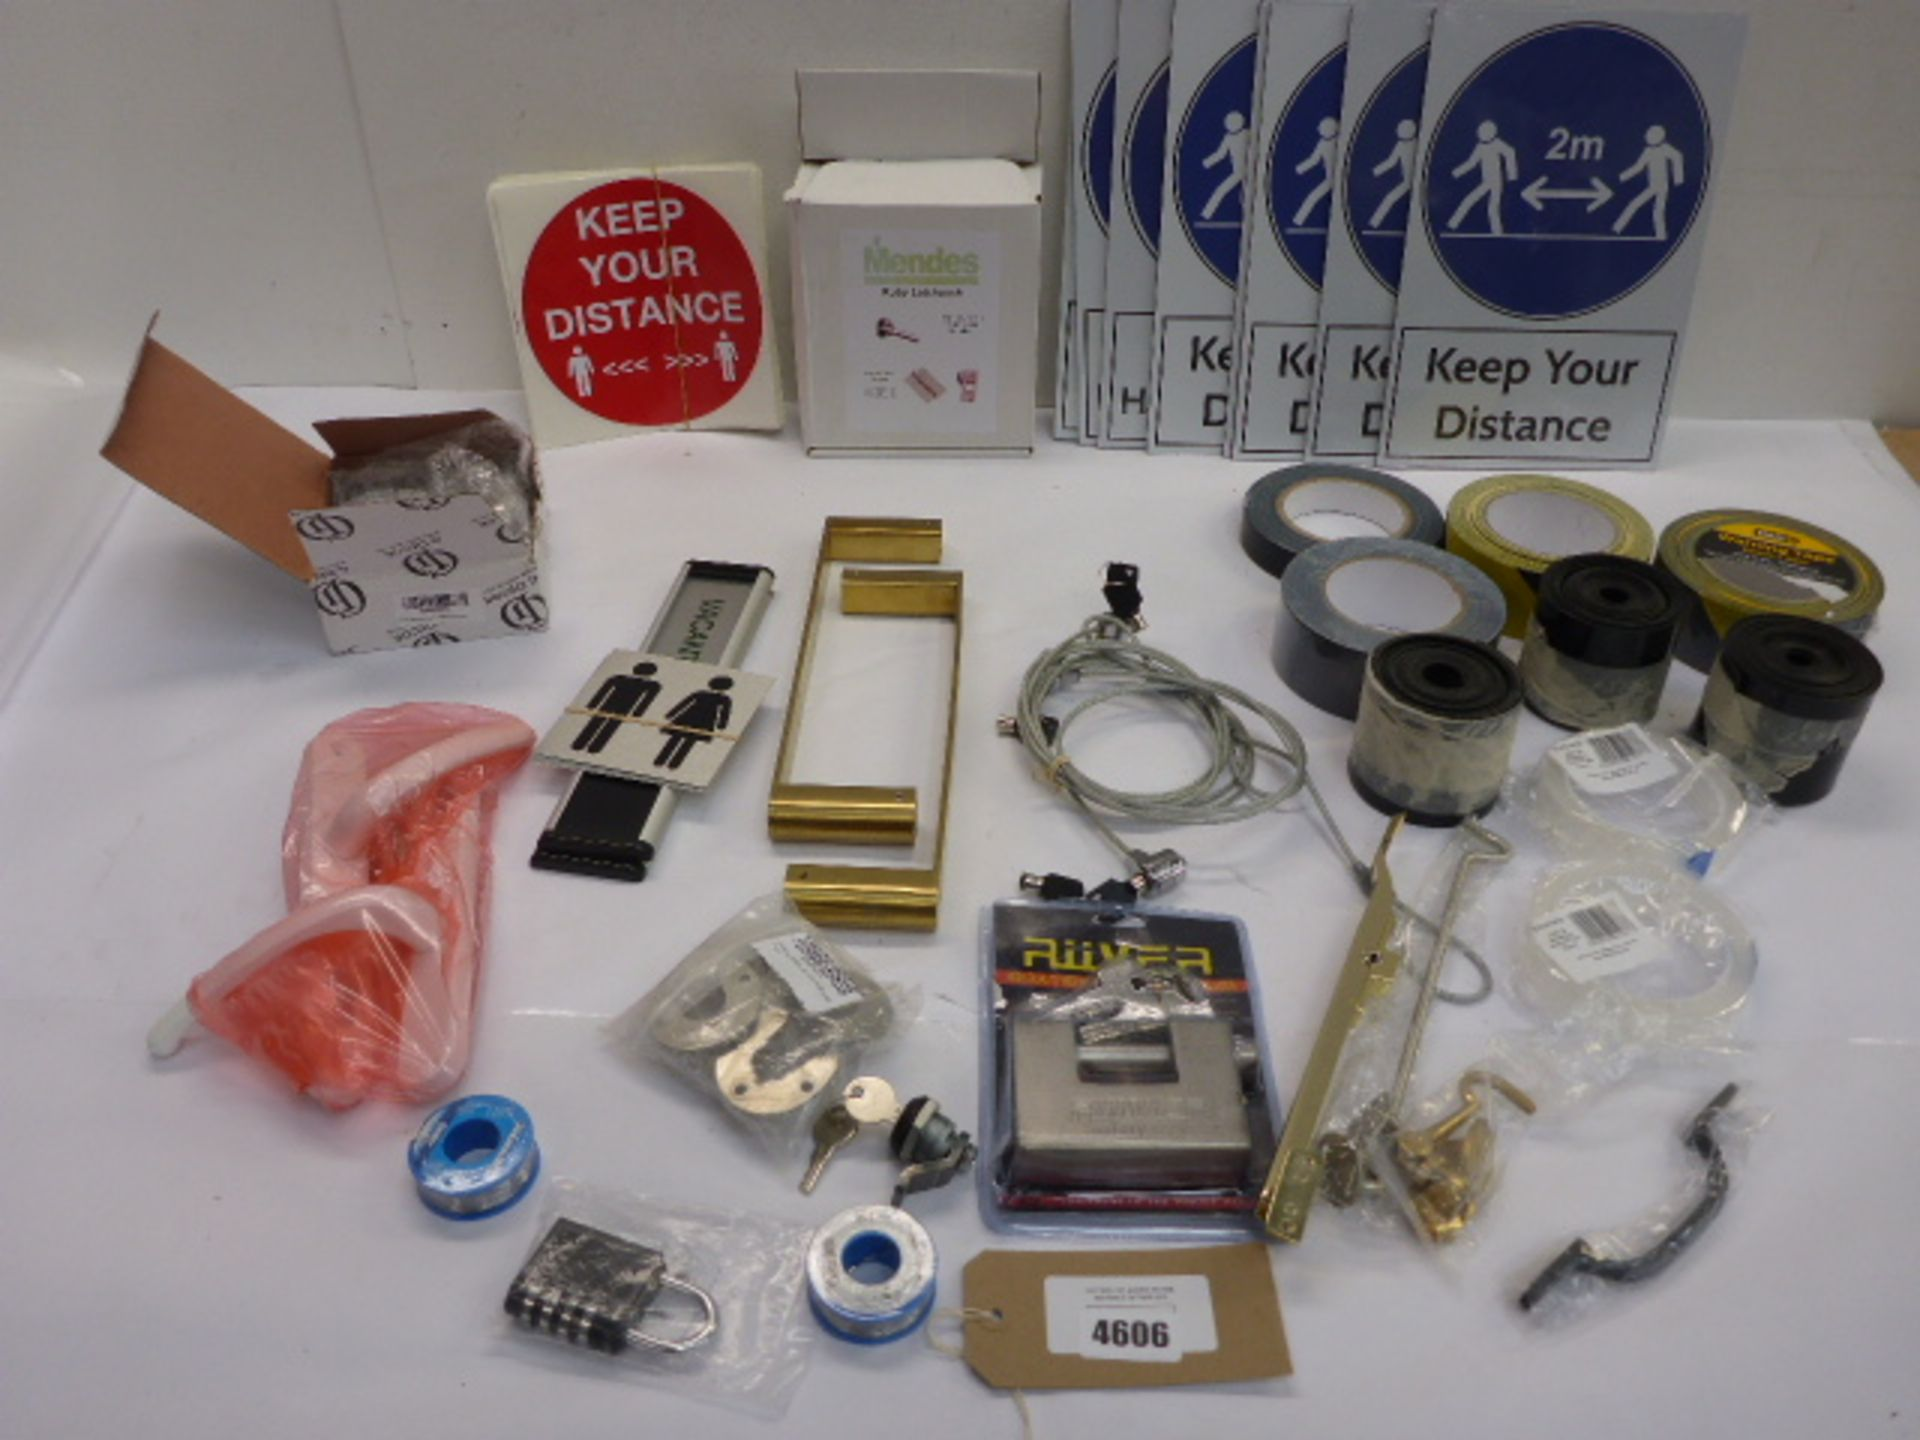 Lot 4606 - Keep Your 2m Distance signs, locks, solder wire, adhesive tapes, drawer knobs etc